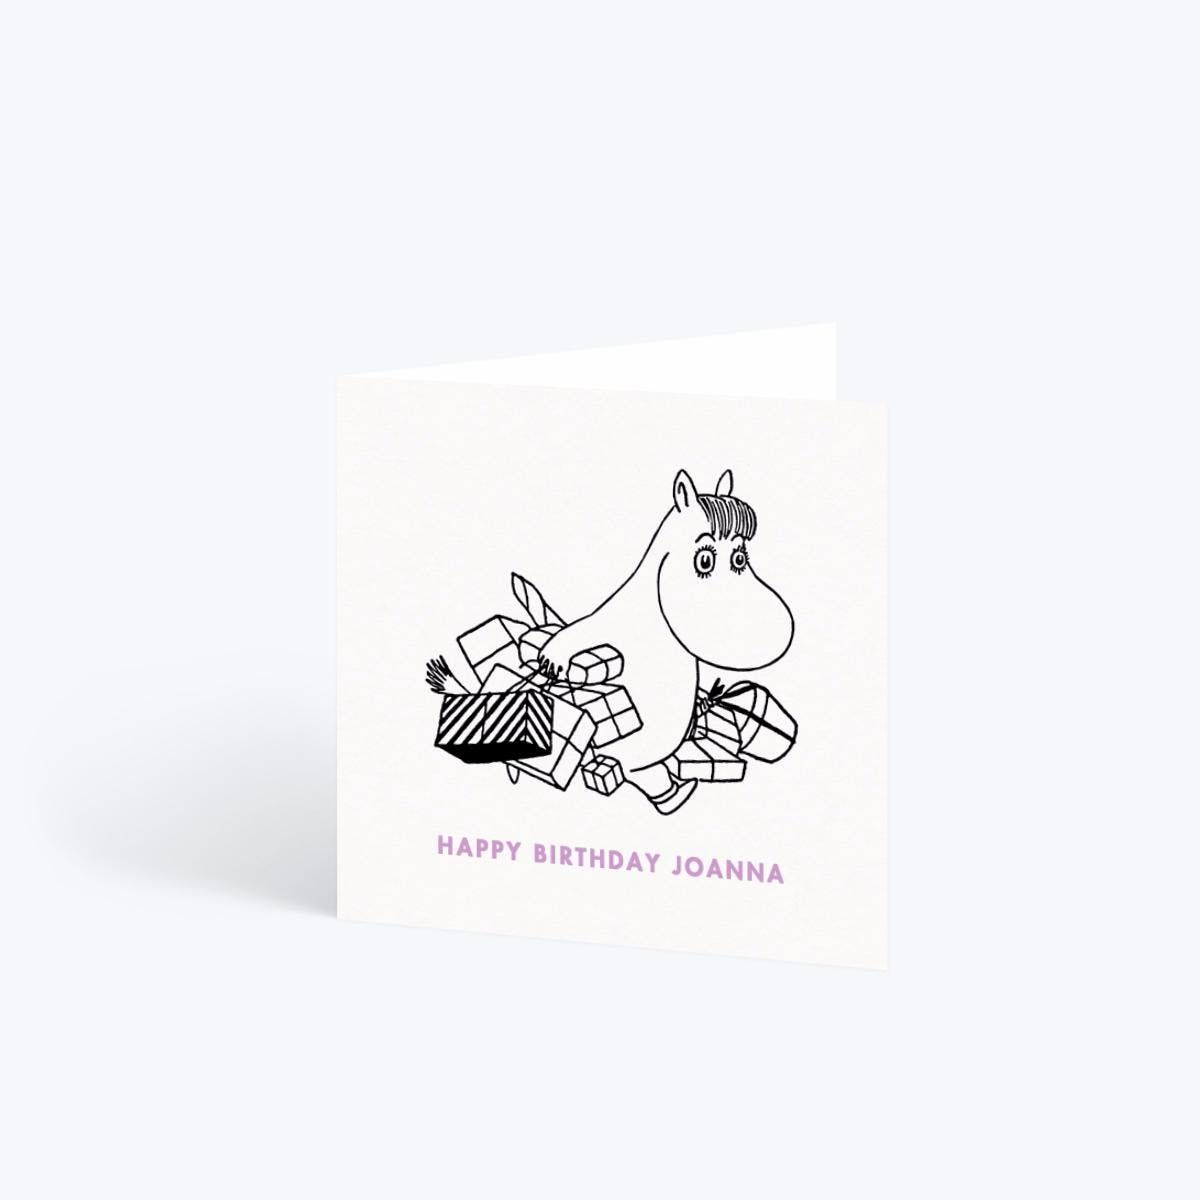 Birthday Card Snorkmaiden With Presents Birthday Cards Birthday Card Design Cards